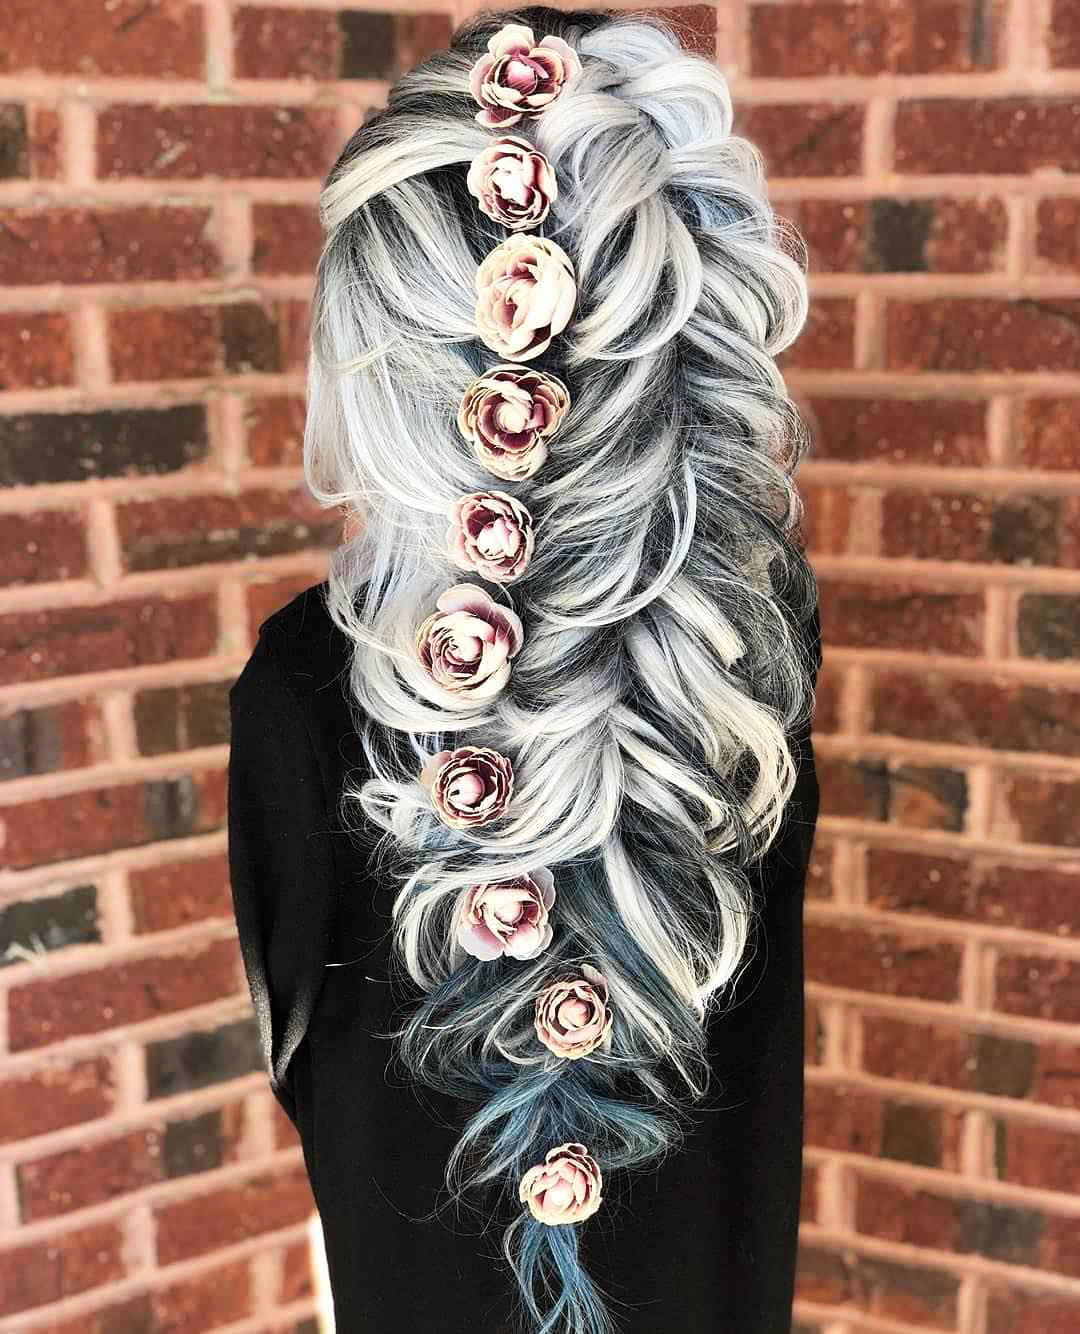 Hairstyles For Prom On Long Hair 2019-2020: Photo 13